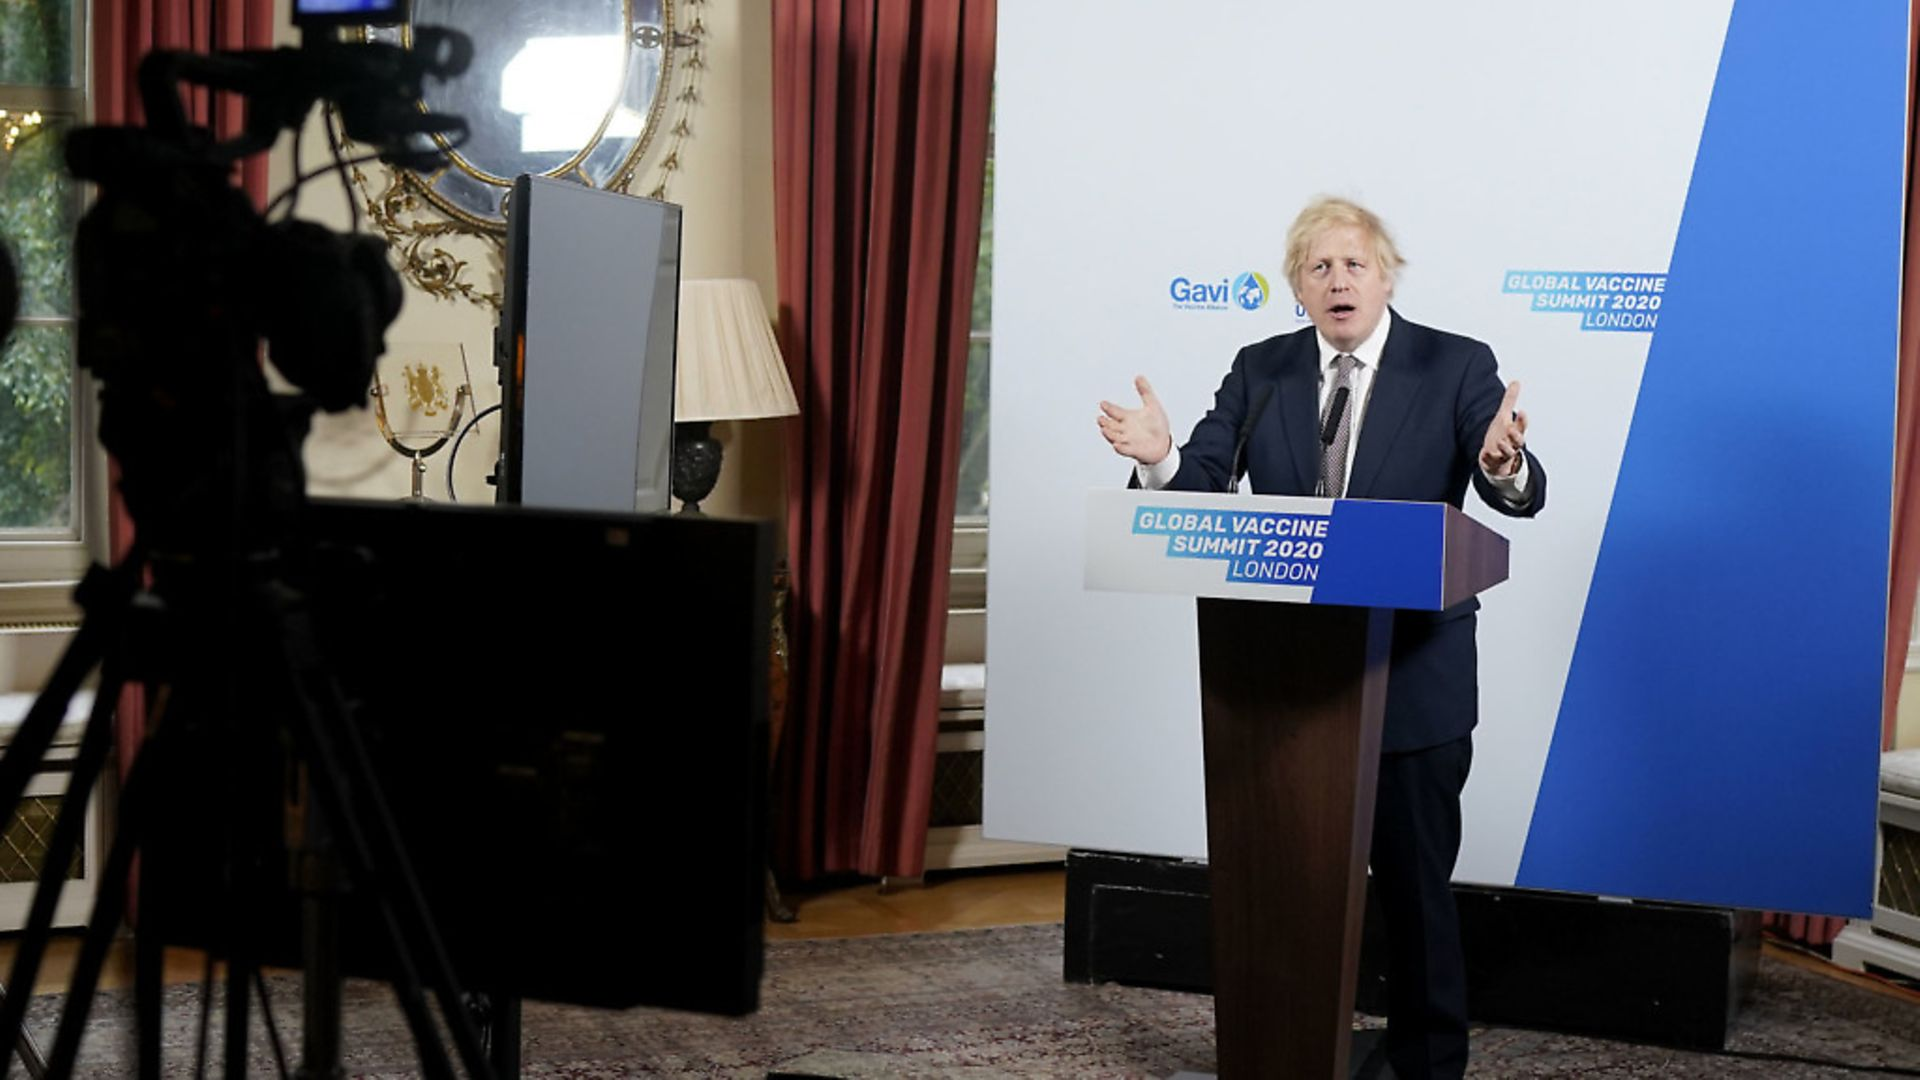 Prime Minister Boris Johnson delivering a speech to the Global Vaccine Summit from the White Room of No10 Downing Street. Photograph: Andrew Parsons/10 Downing Street/Crown Copyright/PA Wire. - Credit: PA